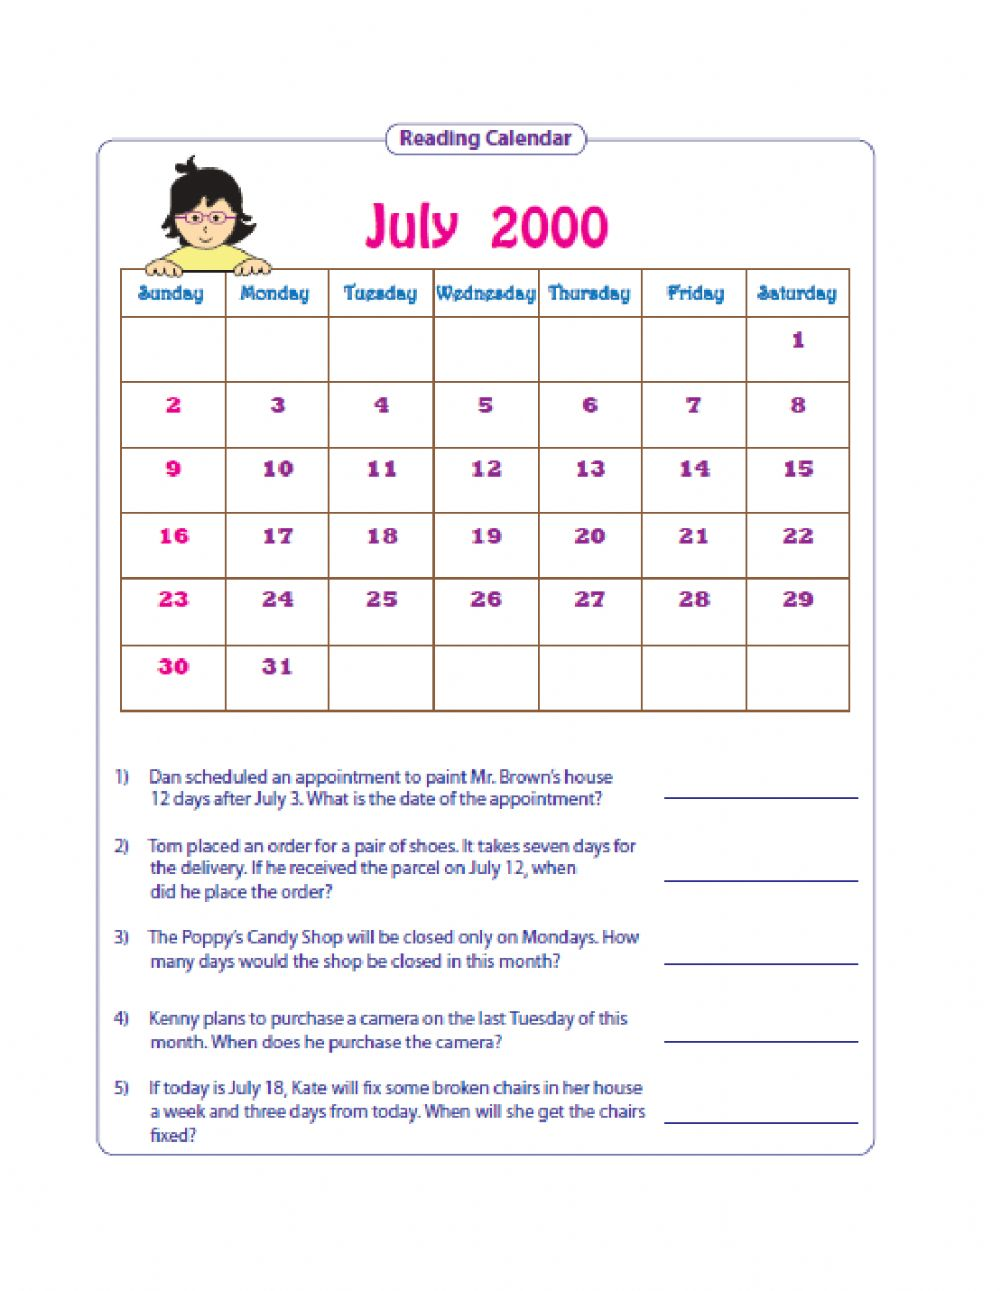 Reading Simple Timetables And Using Calendars Worksheet [ 1291 x 1000 Pixel ]